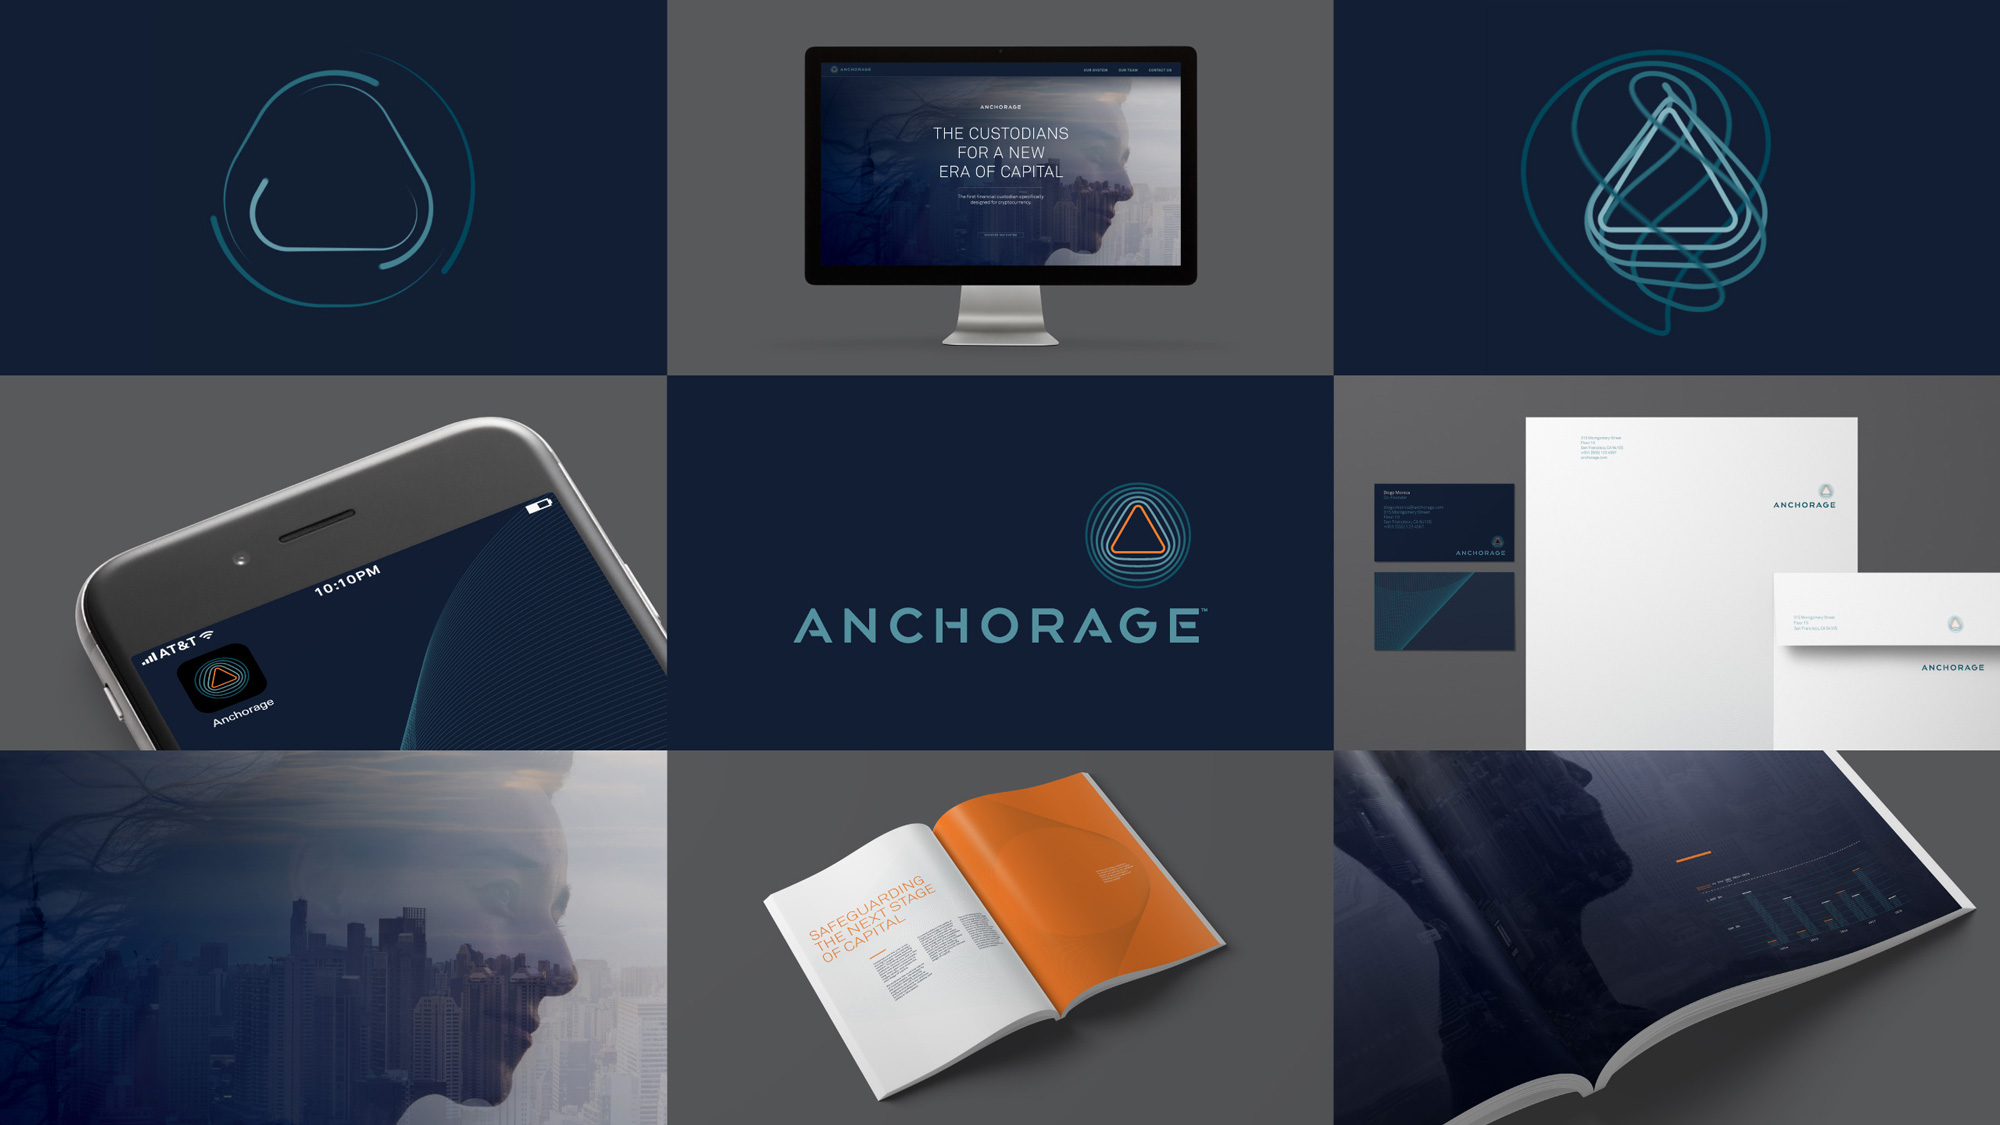 New Logo and Identity for Anchorage by Stitzlein Studio